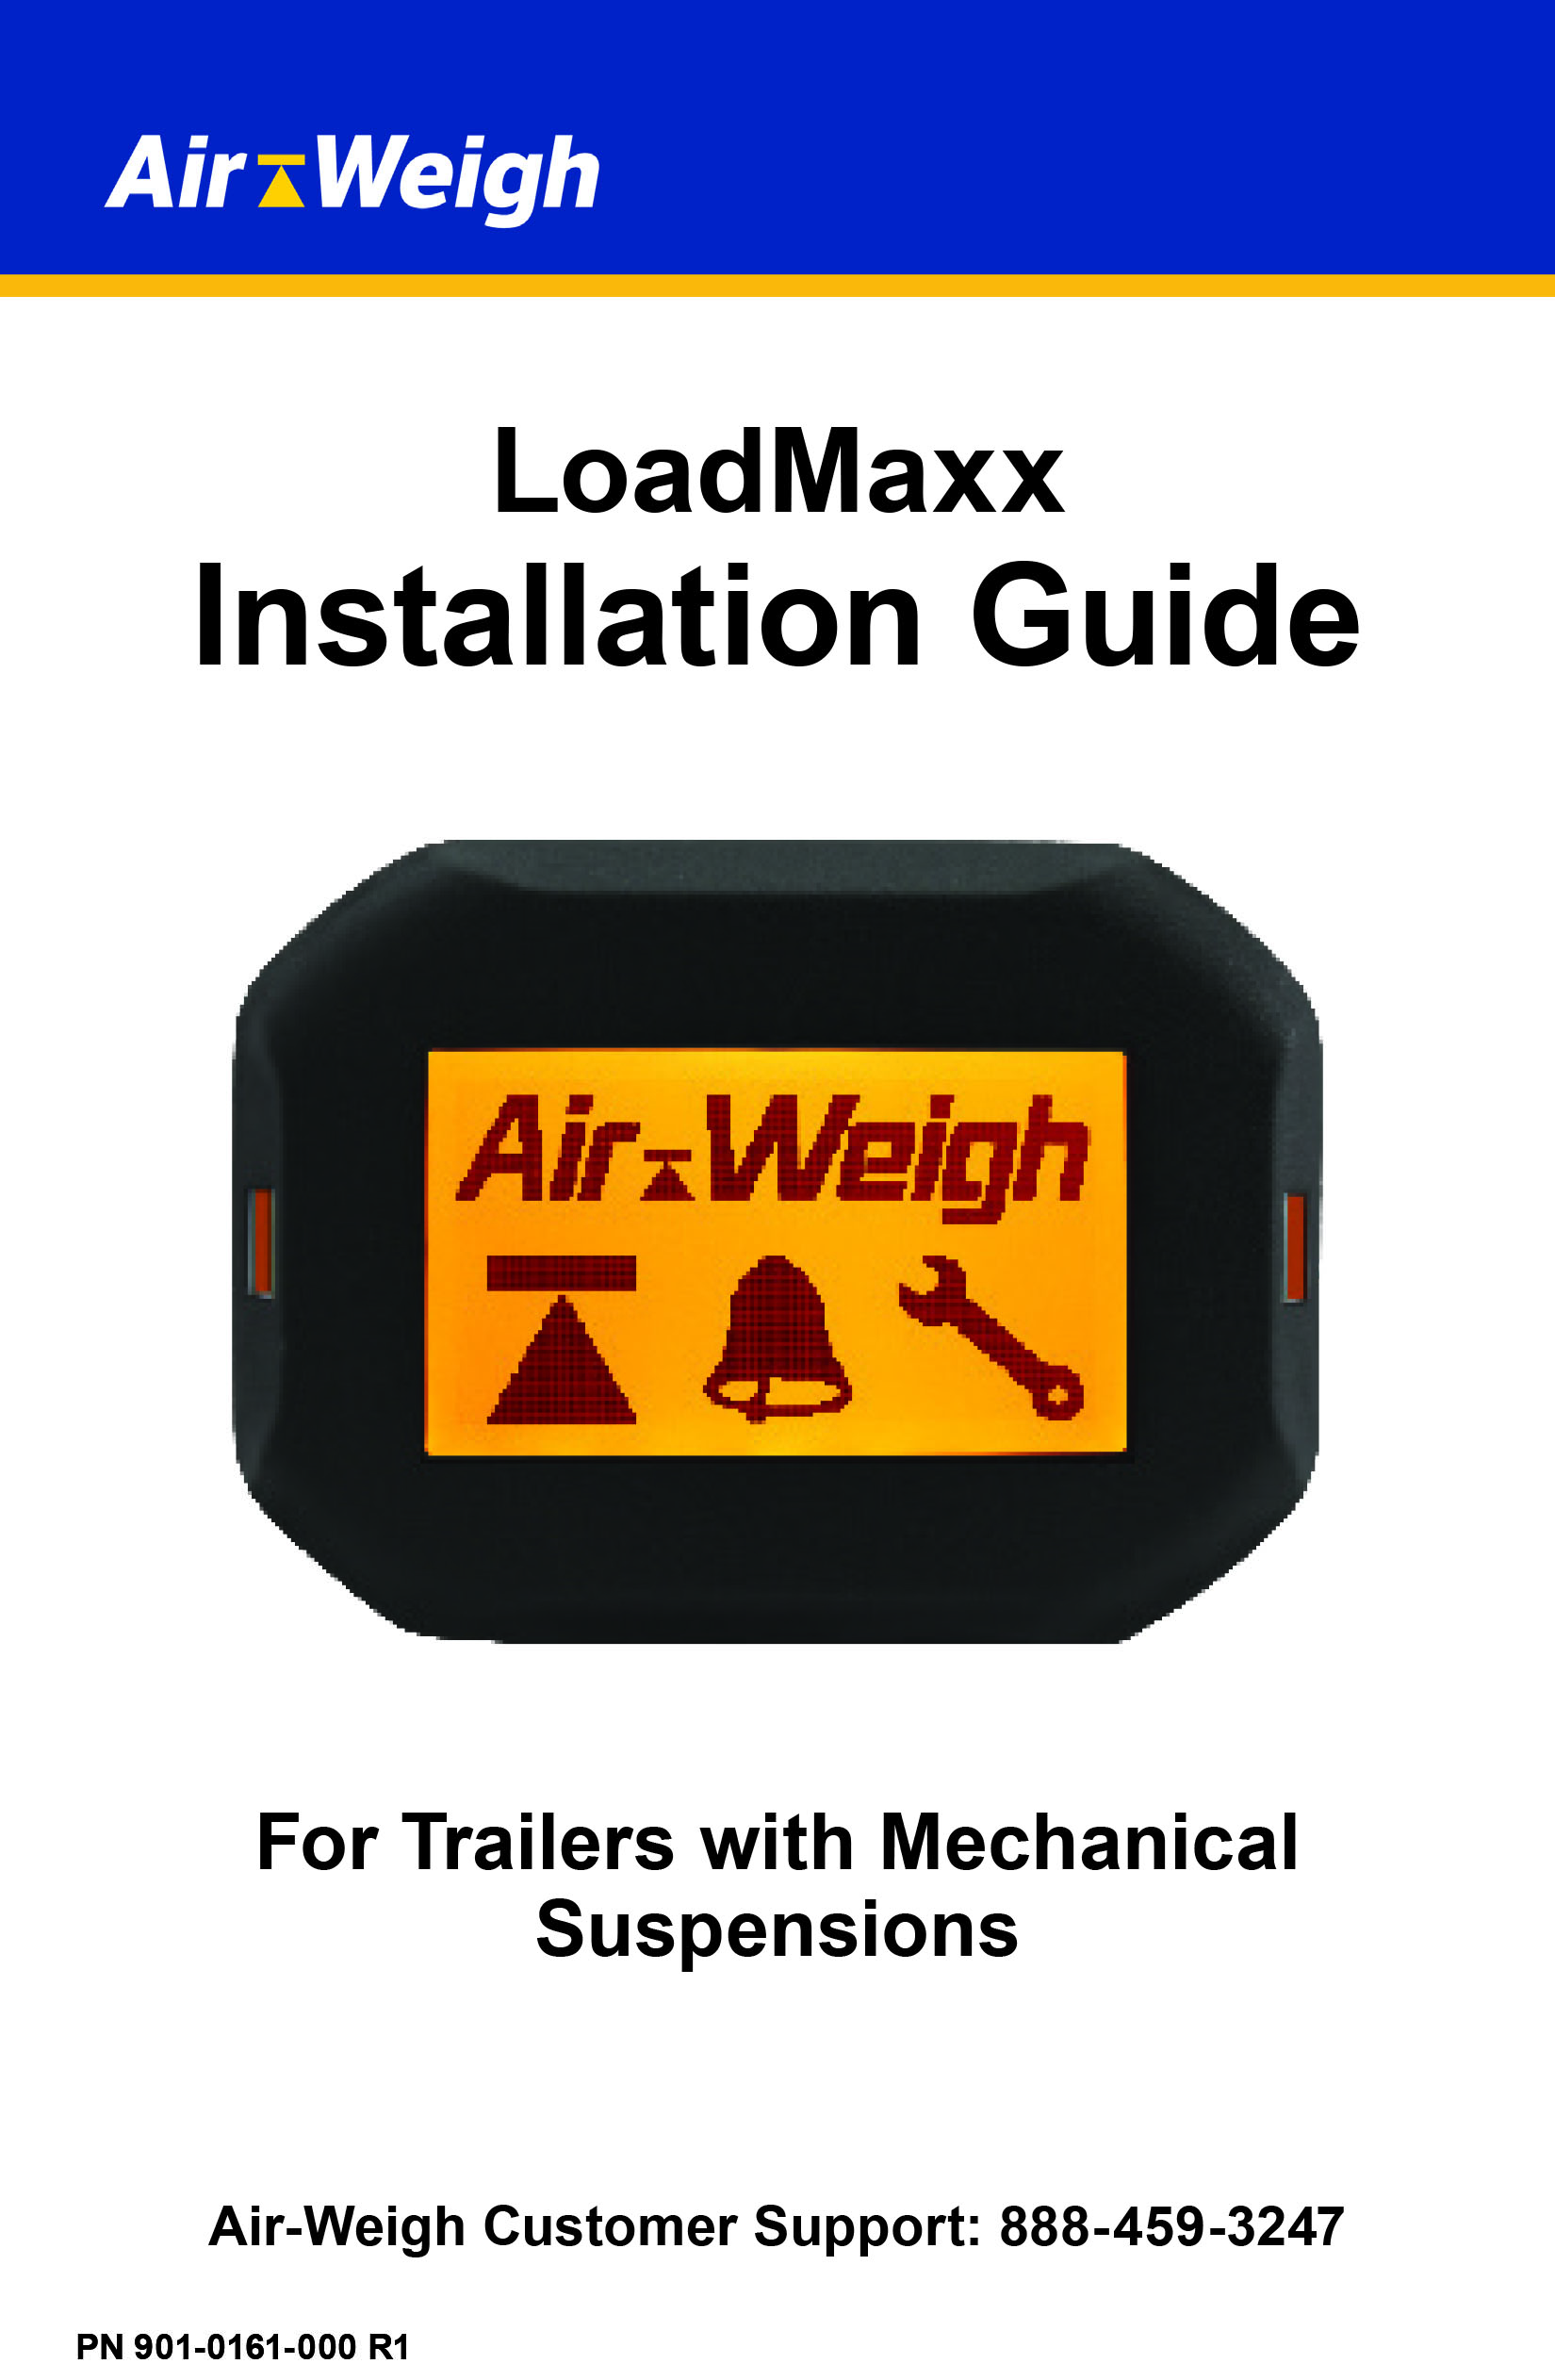 Installation Guide for Trailers with Mechanical Suspensions